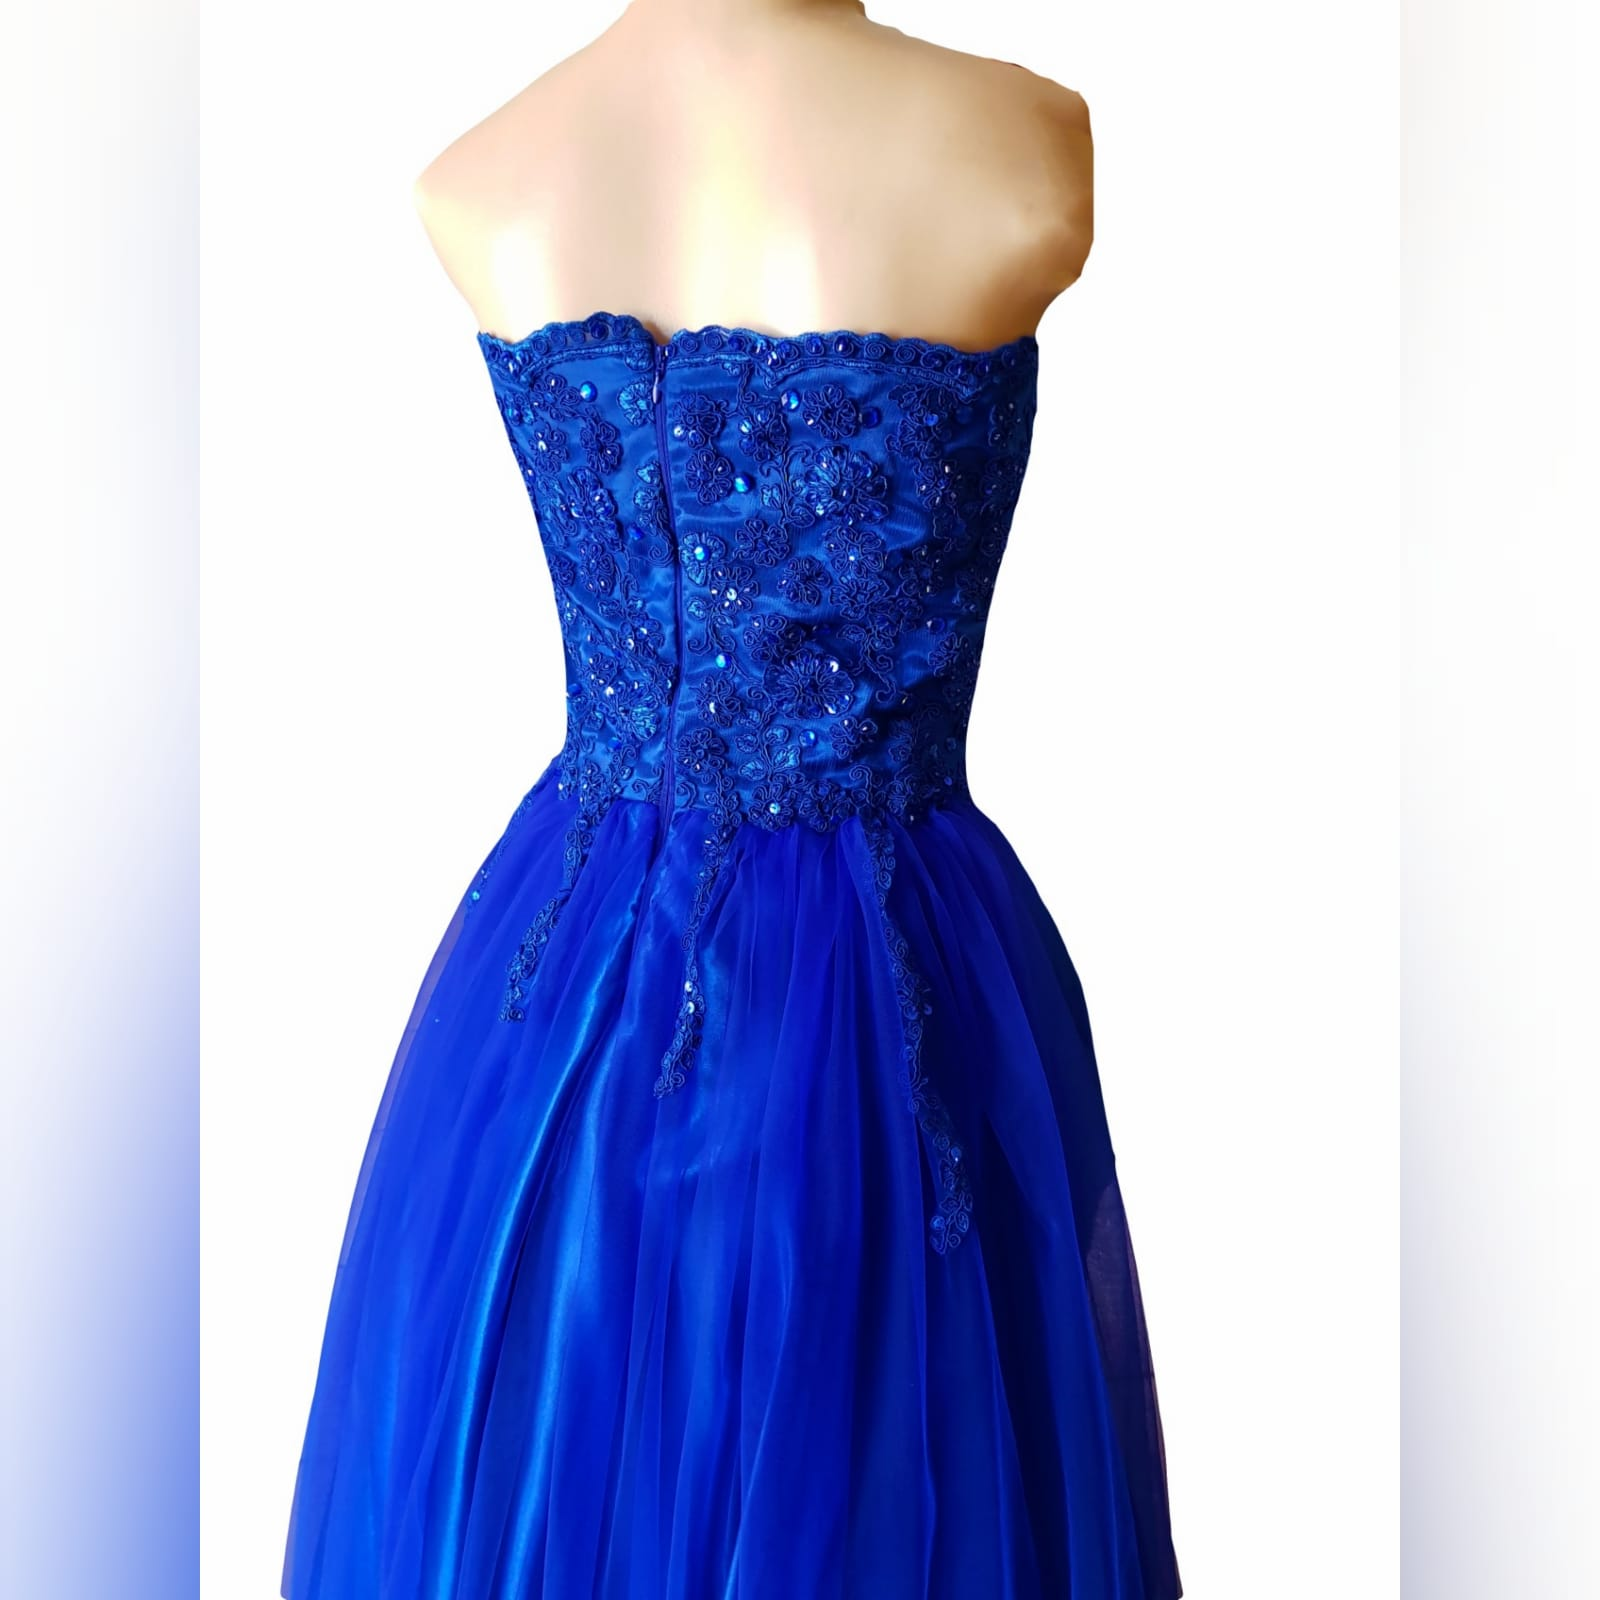 Royal blue boobtube tulle prom dress 11 royal blue boobtube tulle prom dress. Bodice with a sweetheart neckline and detailed with beaded lace falling onto the tulle skirt.